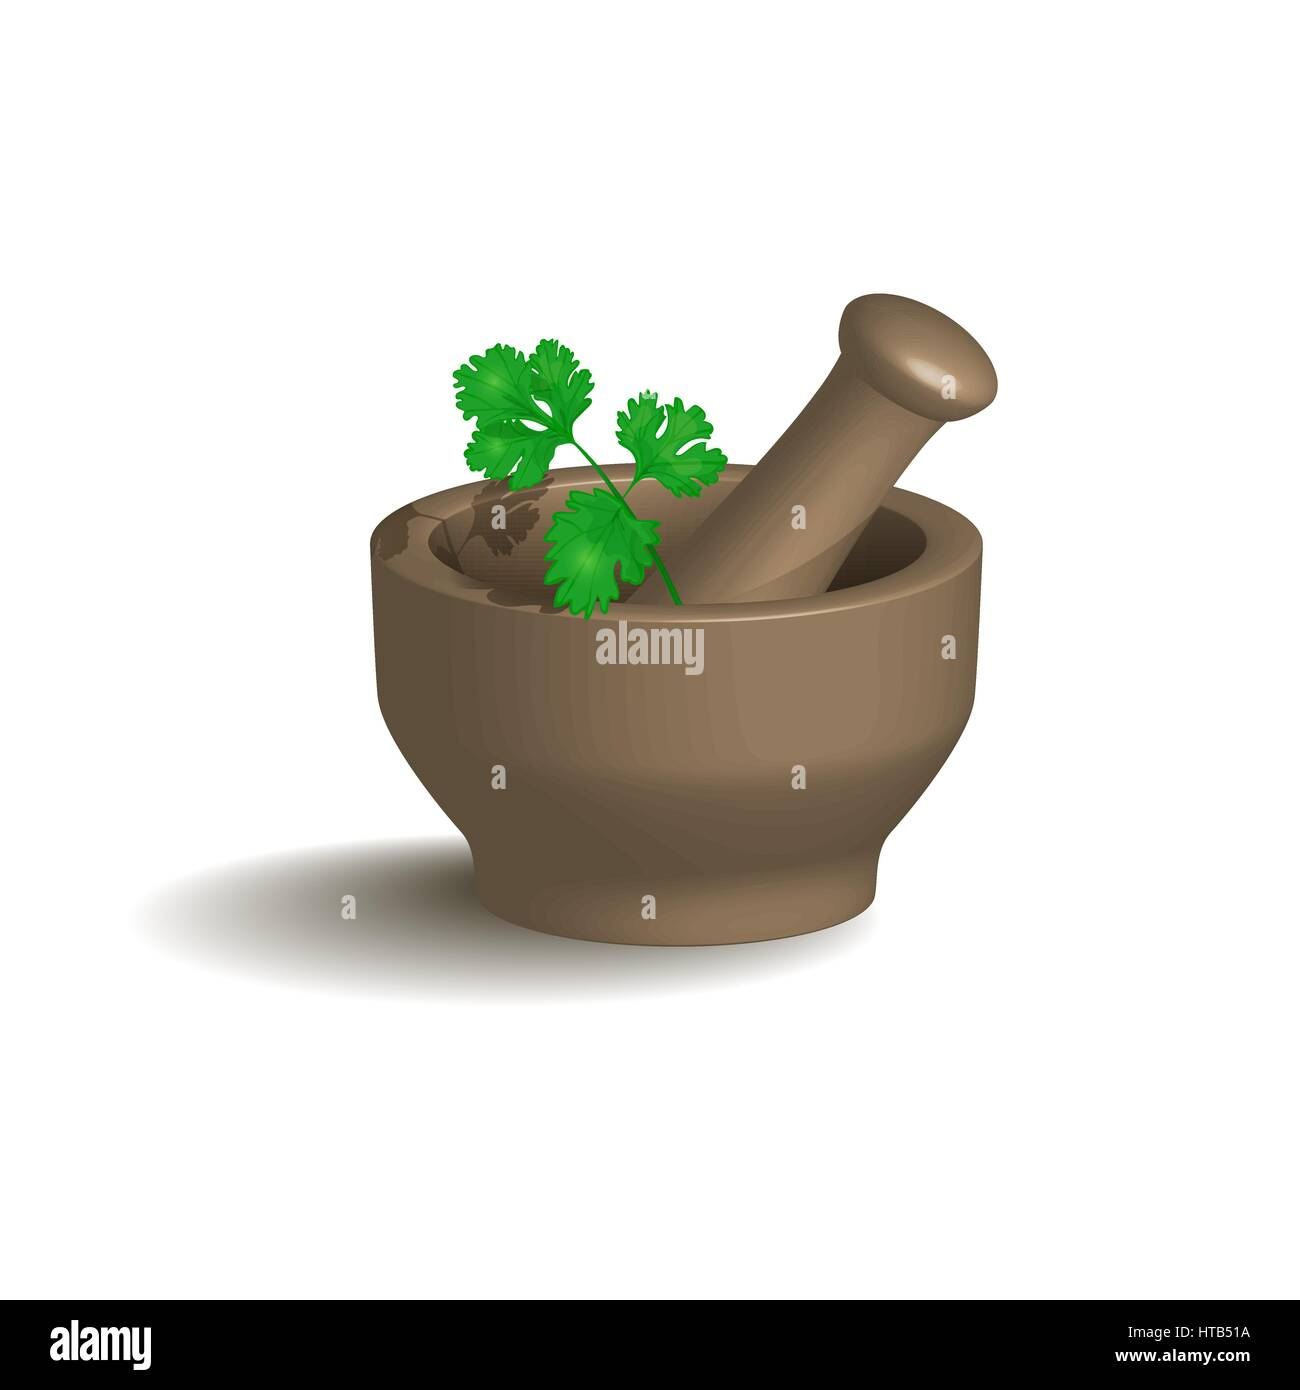 Mortar and Pestle with herbs. Vector illustration. Stock Vector